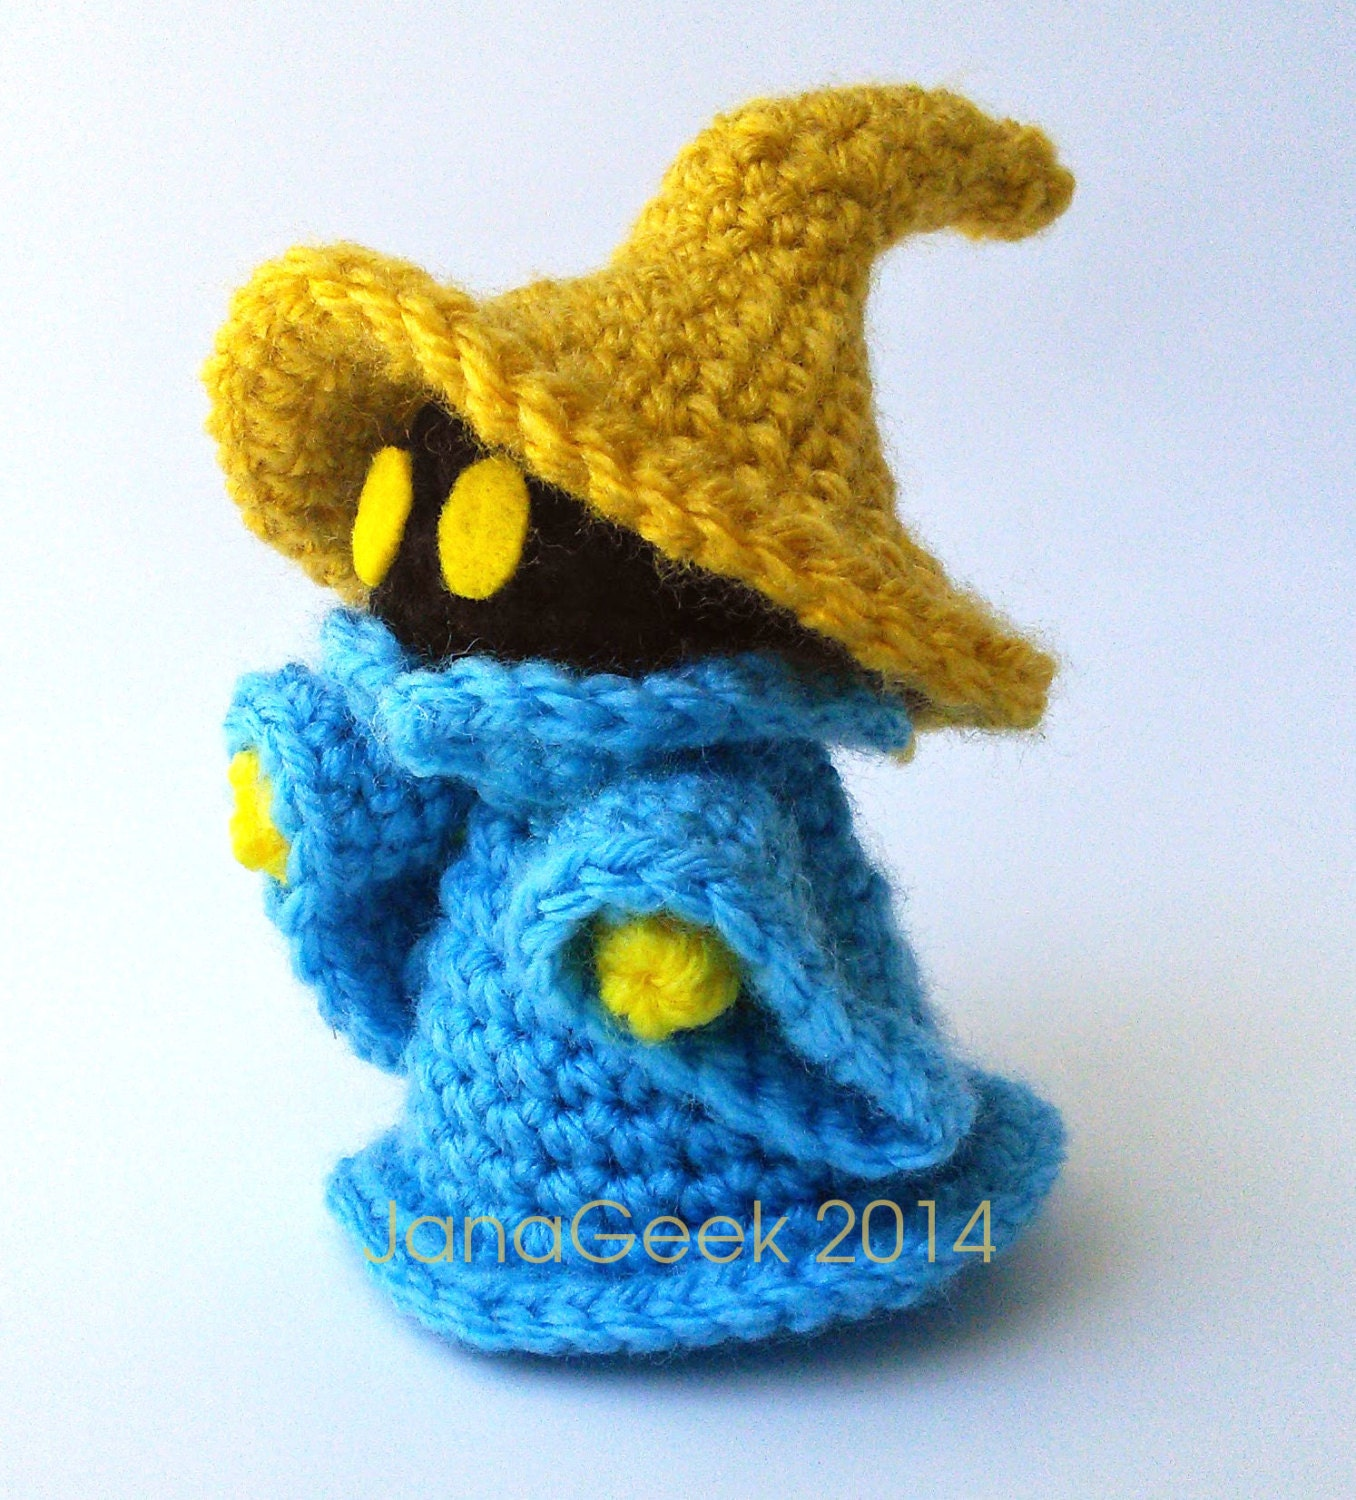 Crochet Stitches Rs : Runescape Crochet Patterns Images & Pictures - Becuo